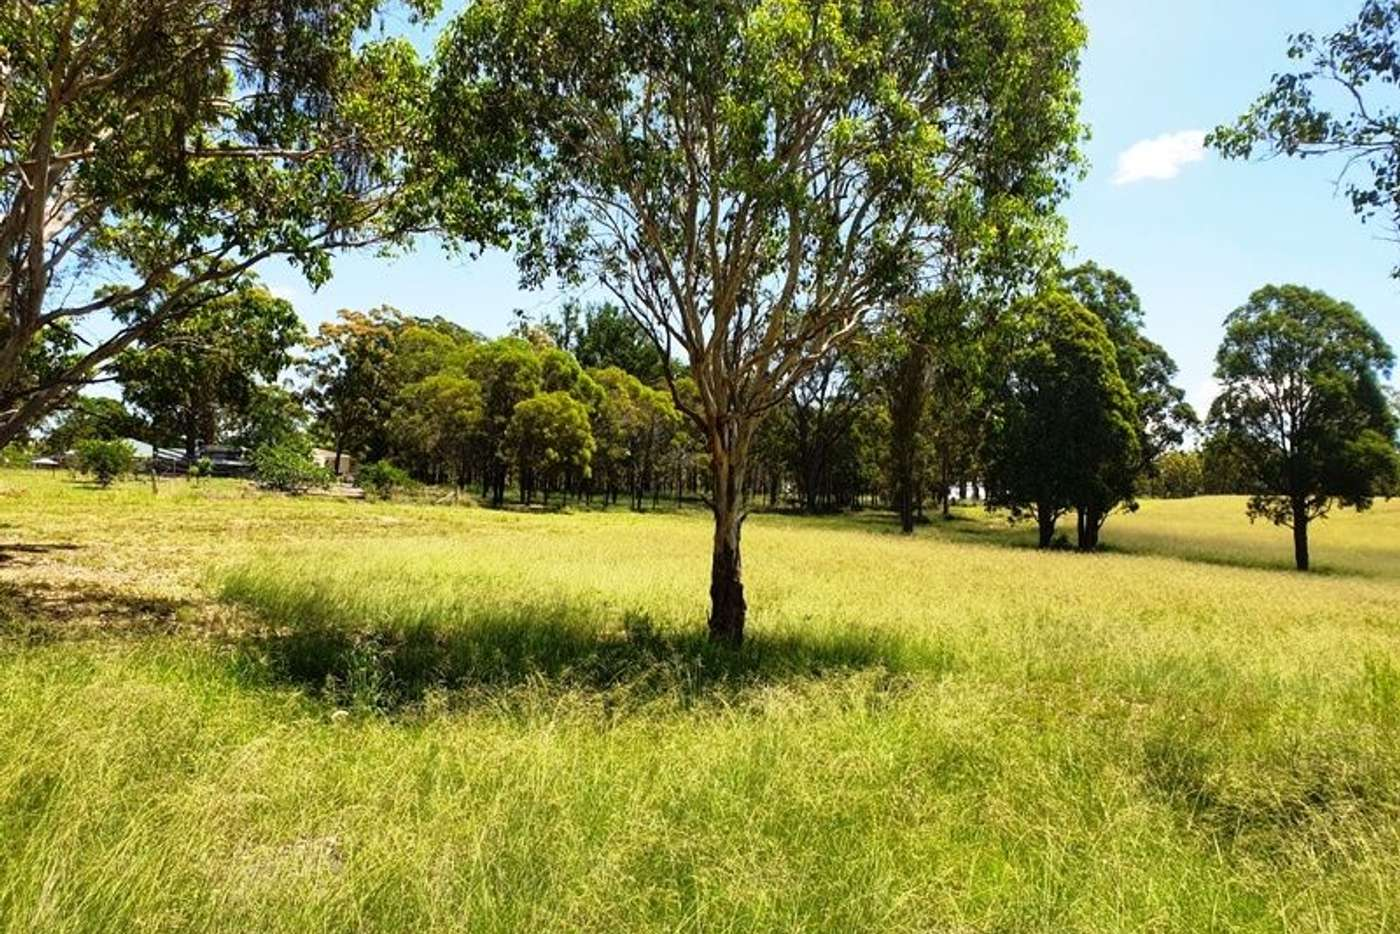 Main view of Homely residentialLand listing, Lot 1 Cnr .Perseverance Dam Road/ Orchard, Crows Nest QLD 4355